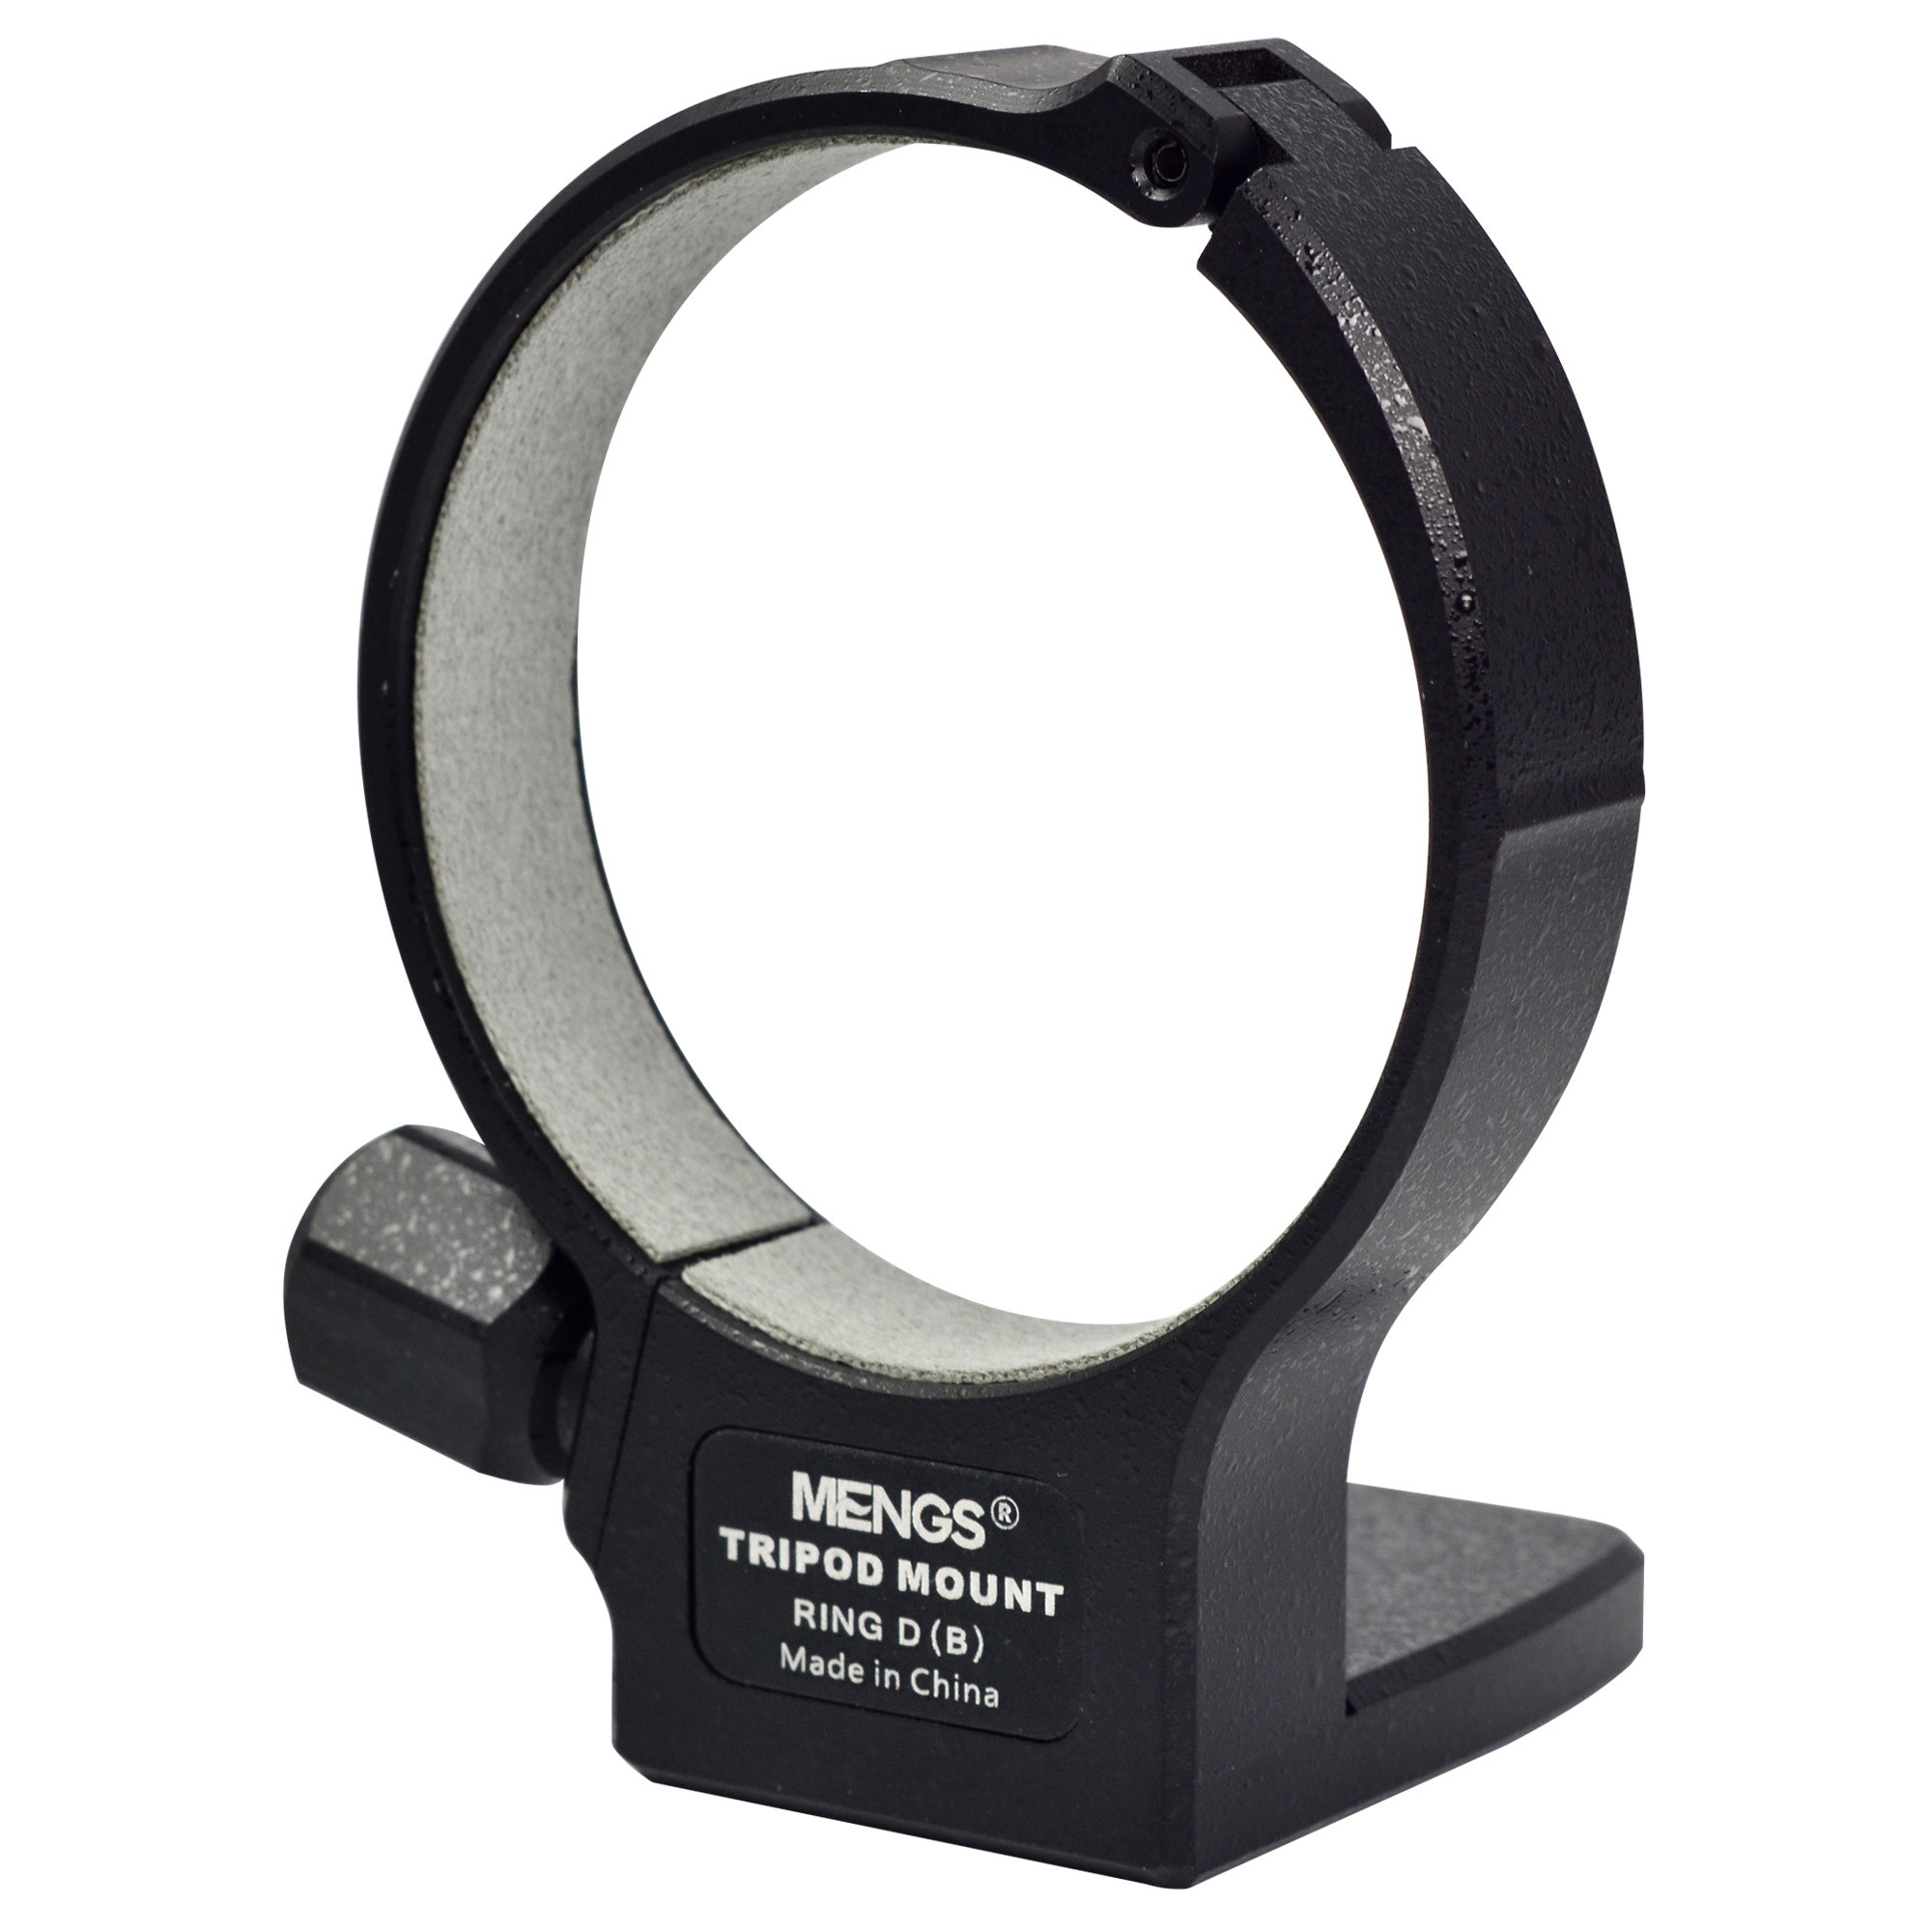 MENGS® 68mm Tripod Mount Ring D (B) with Aluminum Alloy Material For Canon EF 100mm f/2.8L IS USM